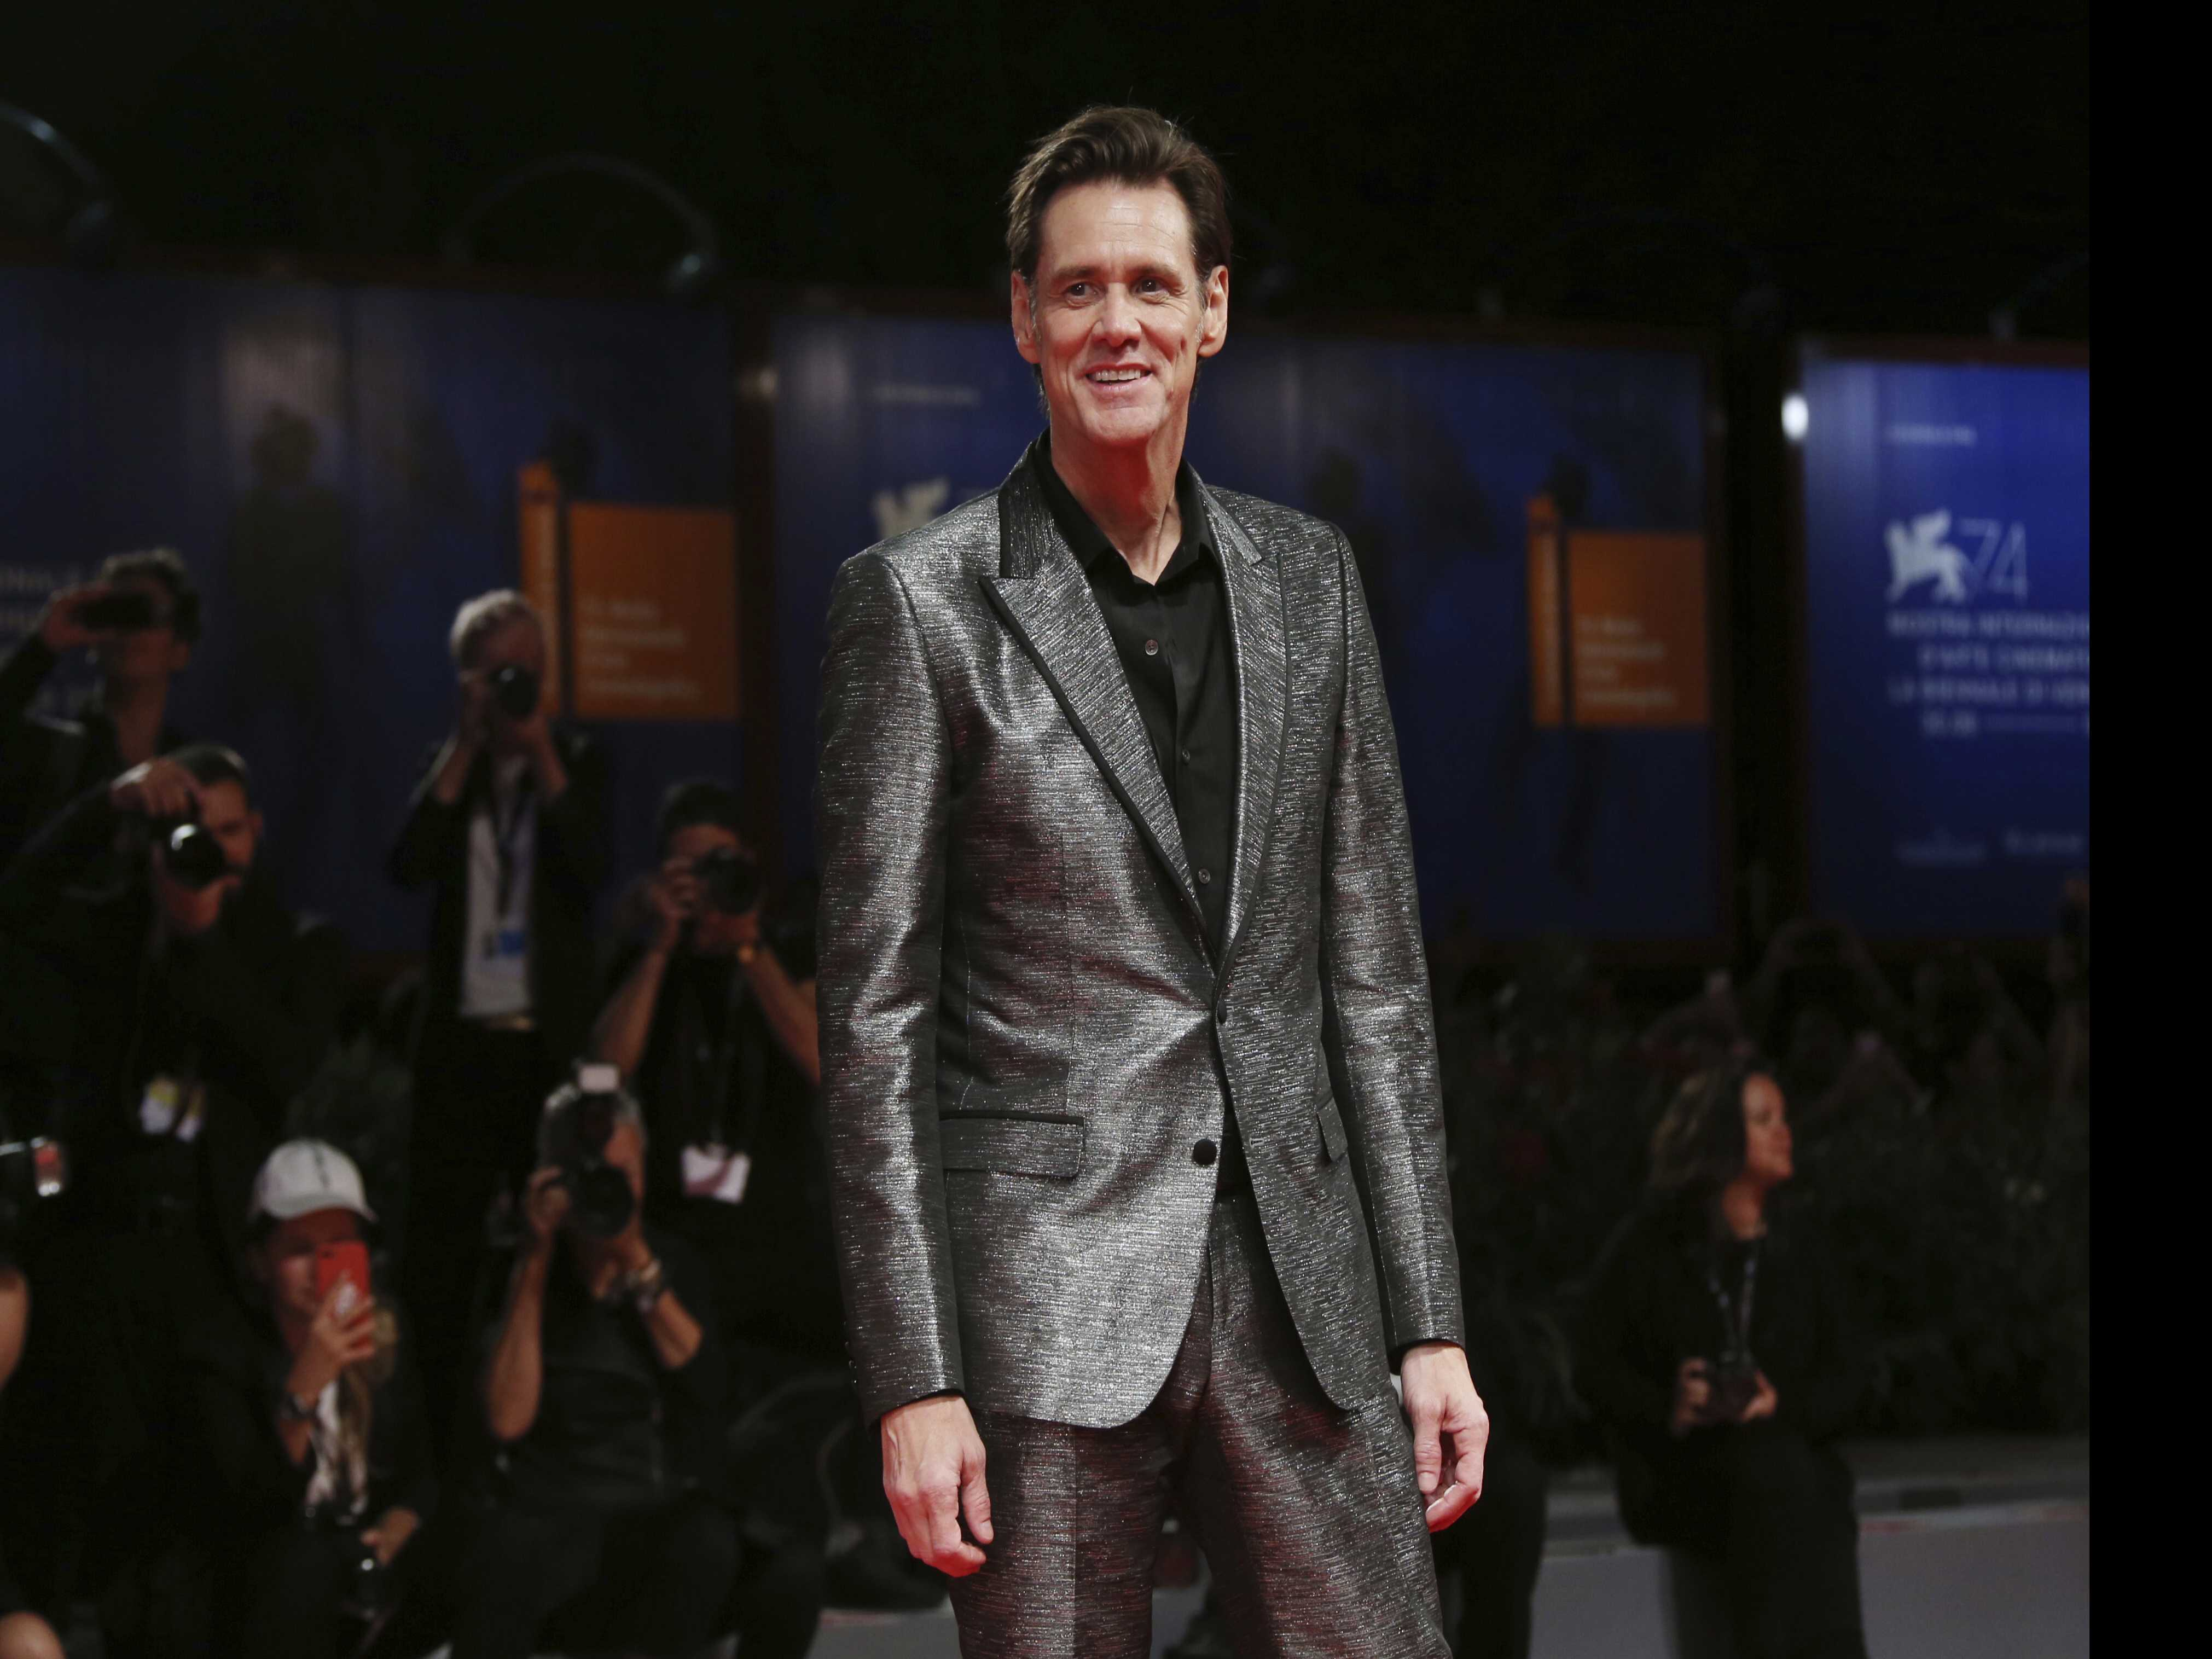 Jim Carrey Criticized for Portrait Believed to be Sanders